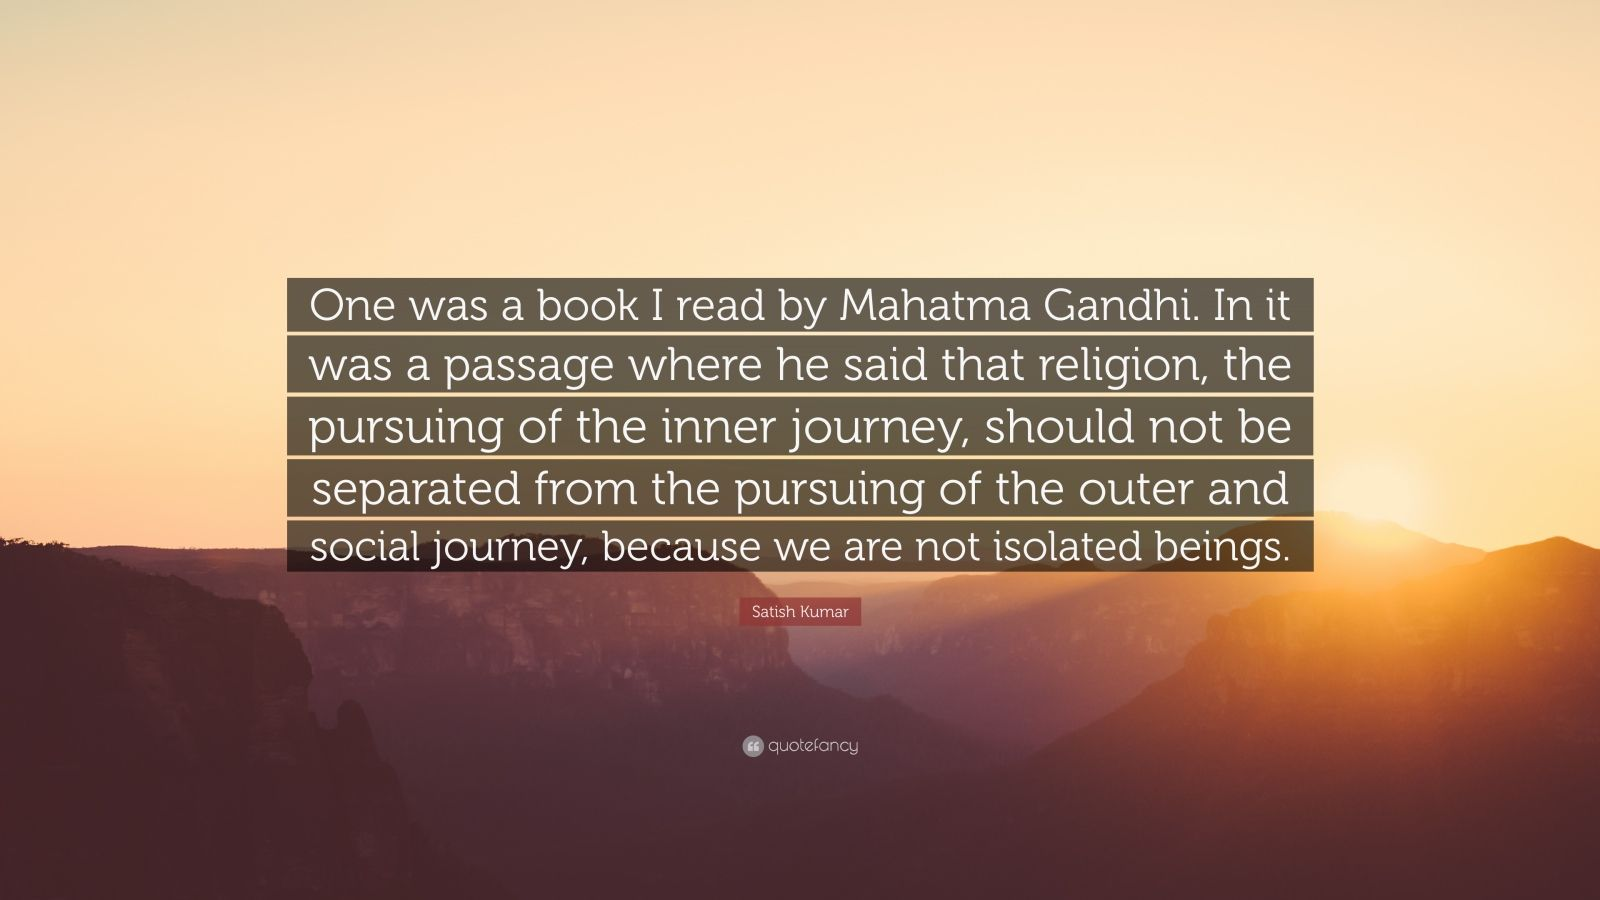 "Satish Kumar Quote: ""One was a book I read by Mahatma Gandhi. In it was a passage where he said that religion, the pursuing of the inner journey, should not be separated from the pursuing of the outer and social journey, because we are not isolated beings."""